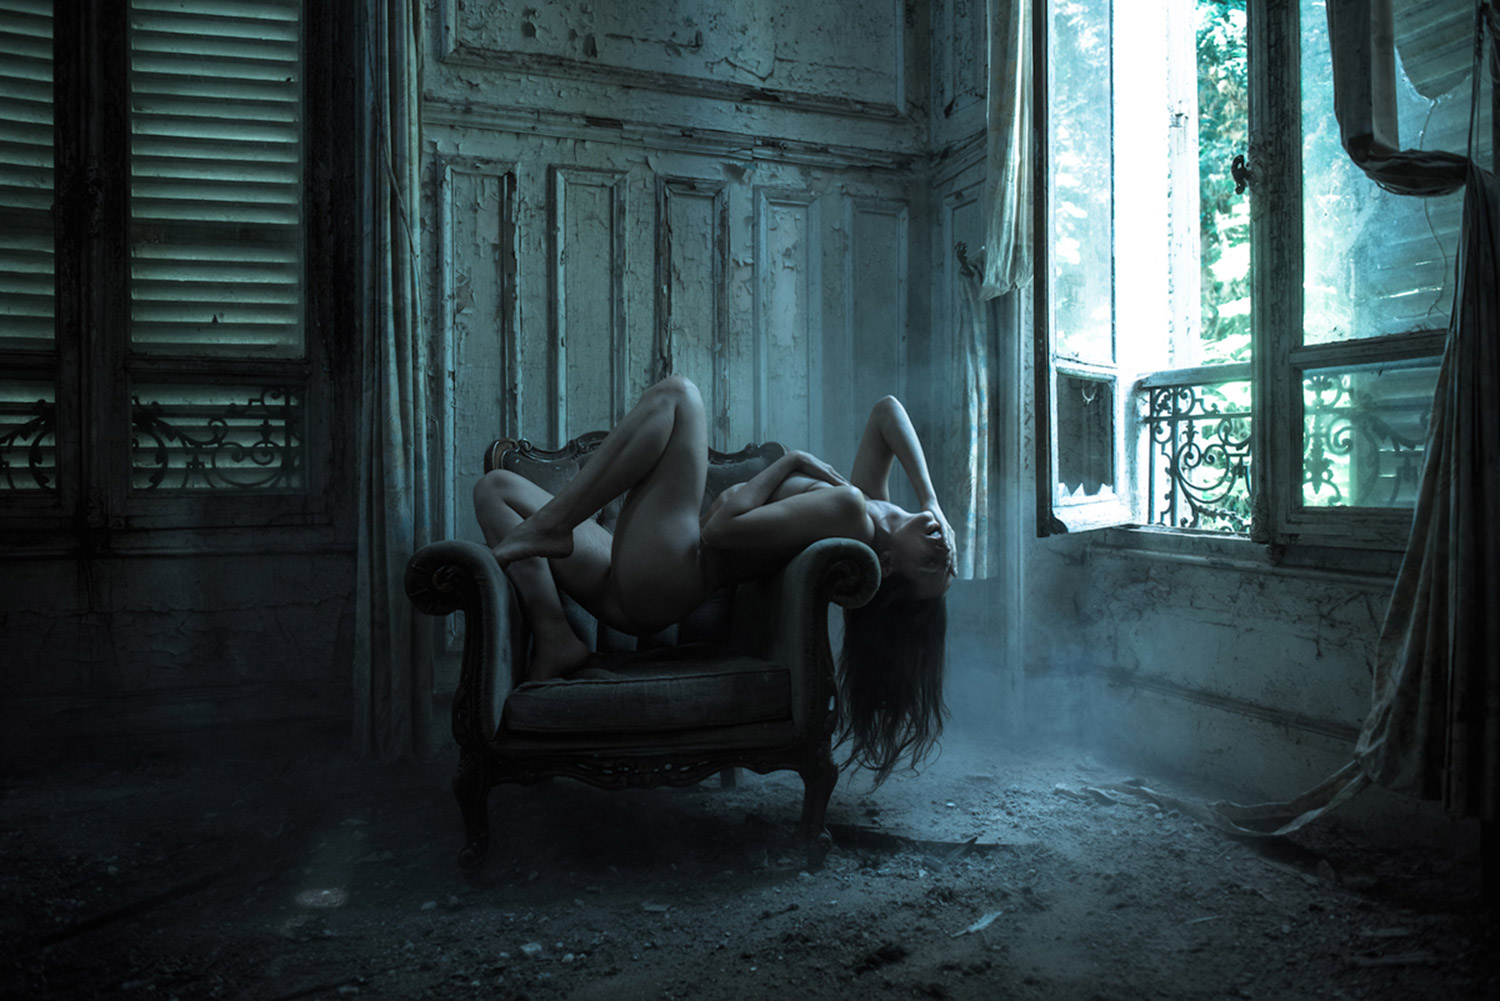 Jeremy Gibbs, Ayla in Decay, nude posing in abandoned building, expression dark passion and sadness